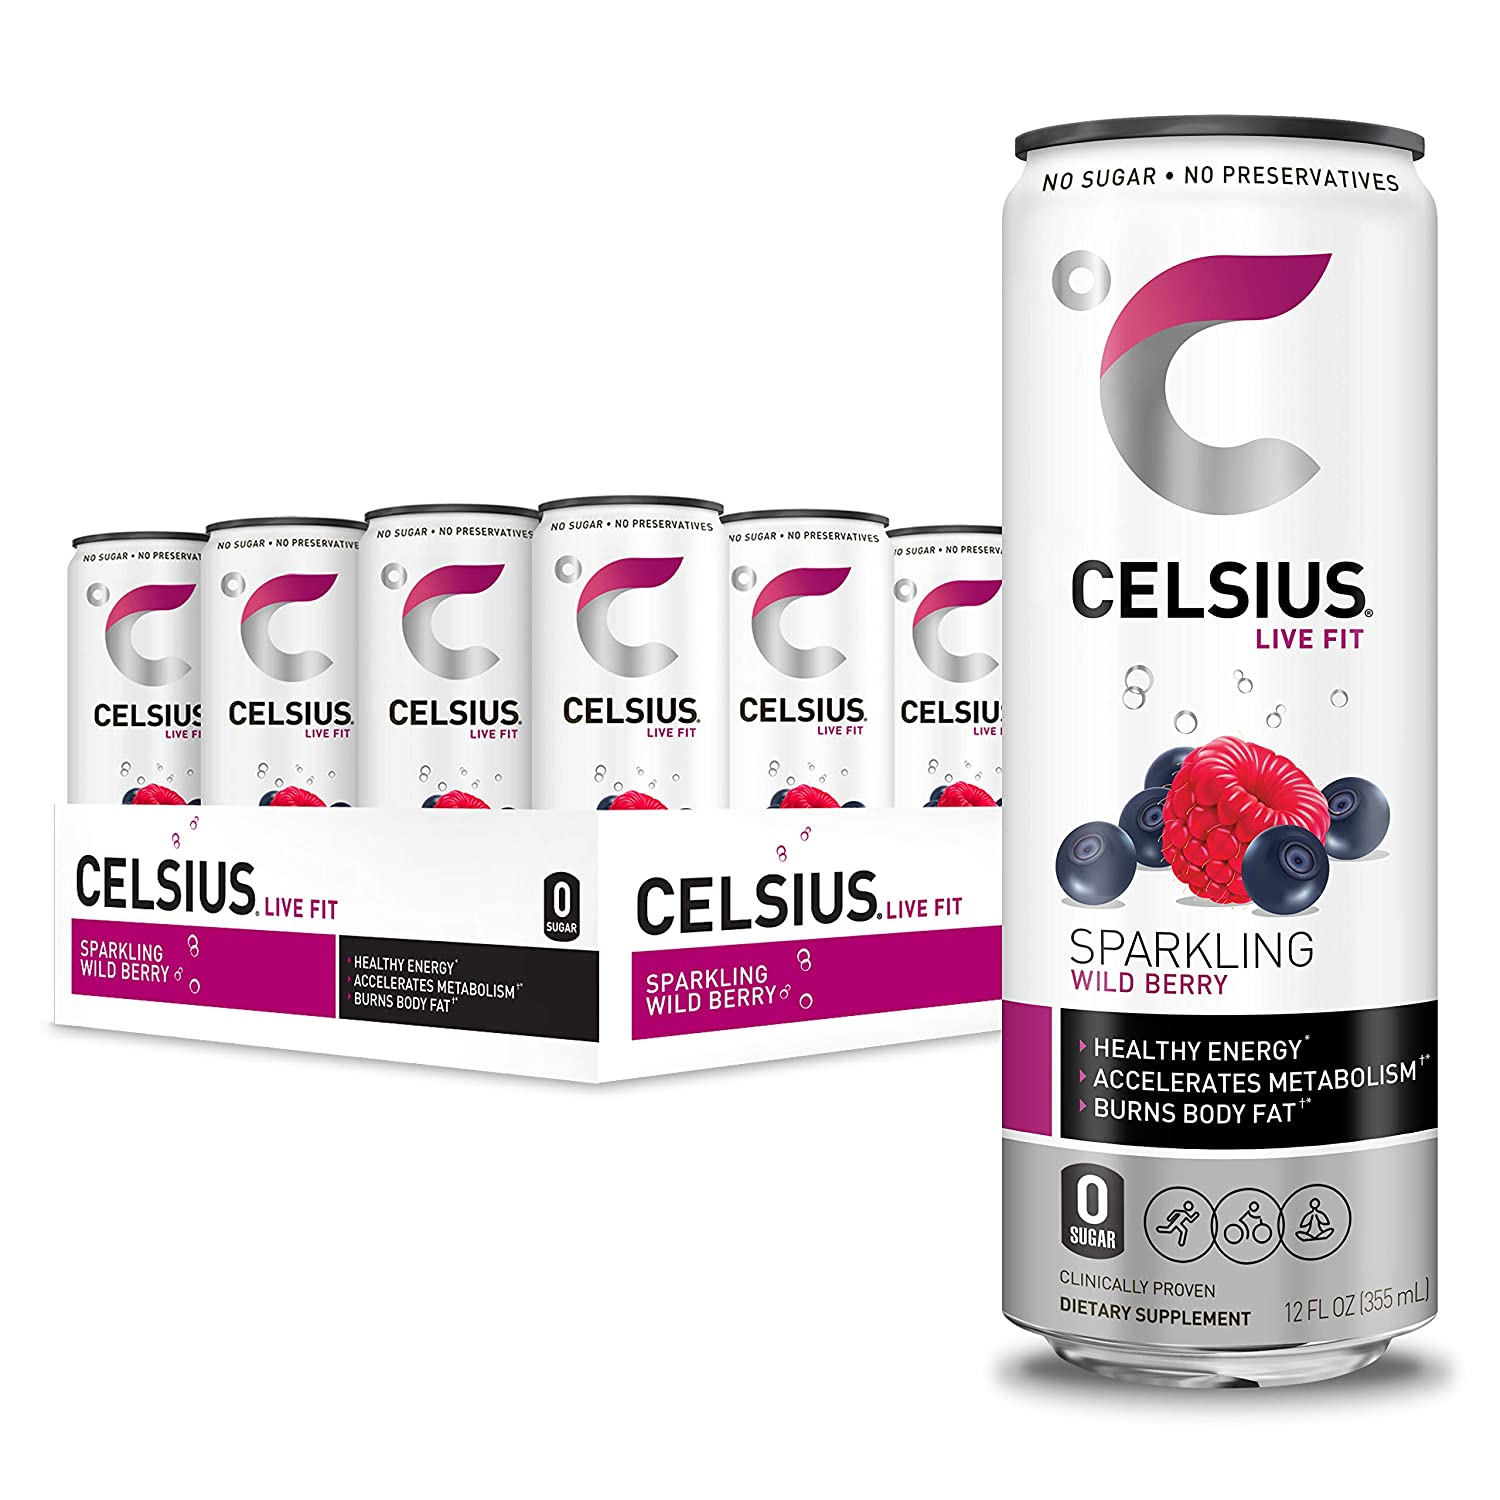 CELSIUS Sparkling Wild Berry Fitness Drink, Zero Sugar, 12oz. Slim Can, 12 Pack